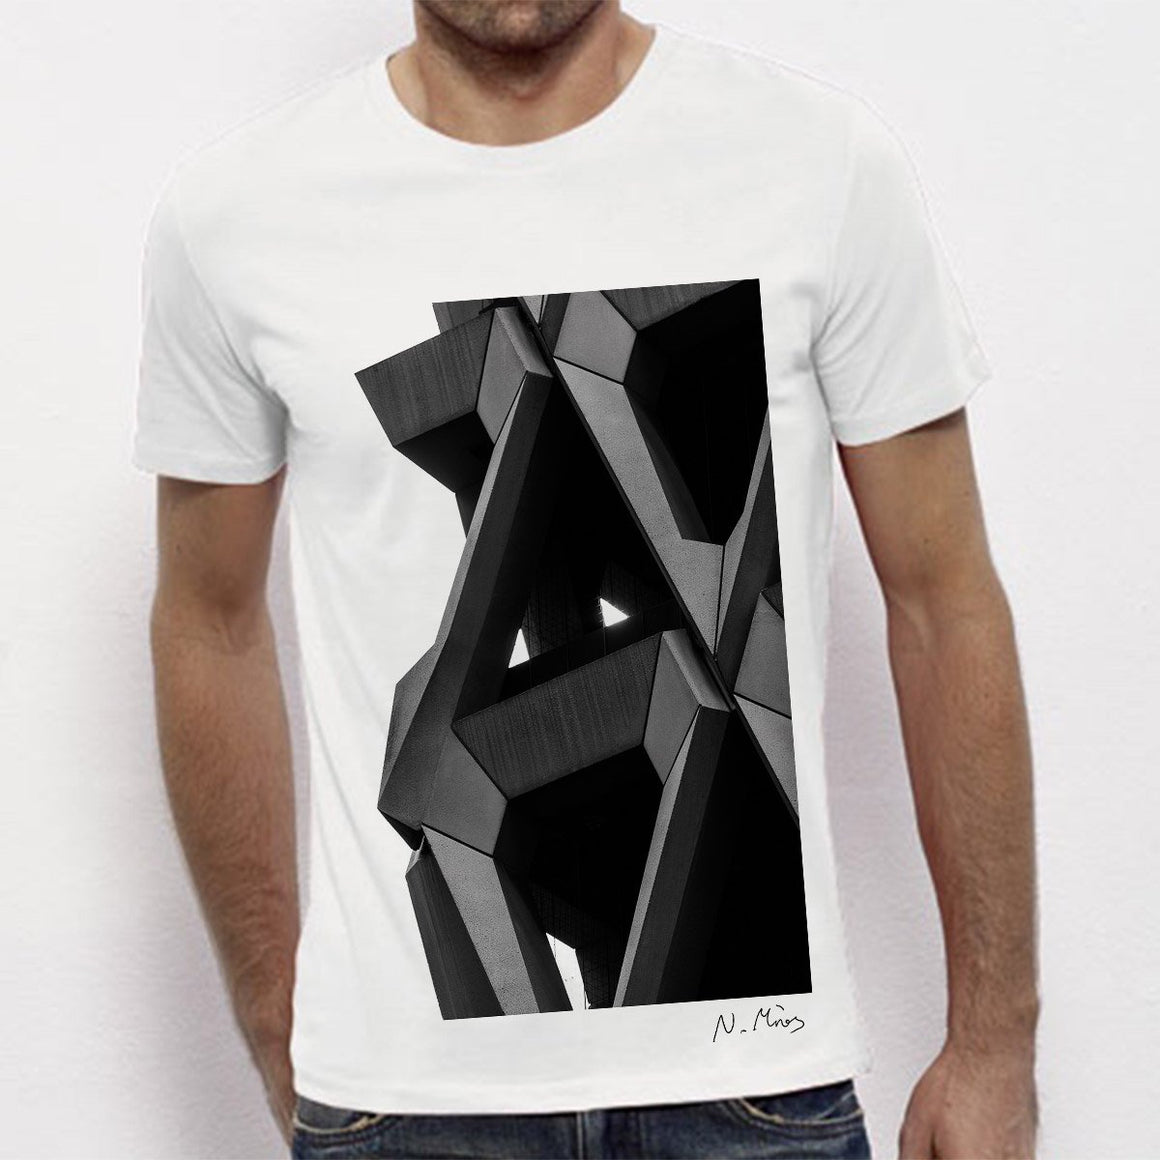 Welbeck Architect's T-Shirt by Nick Miners